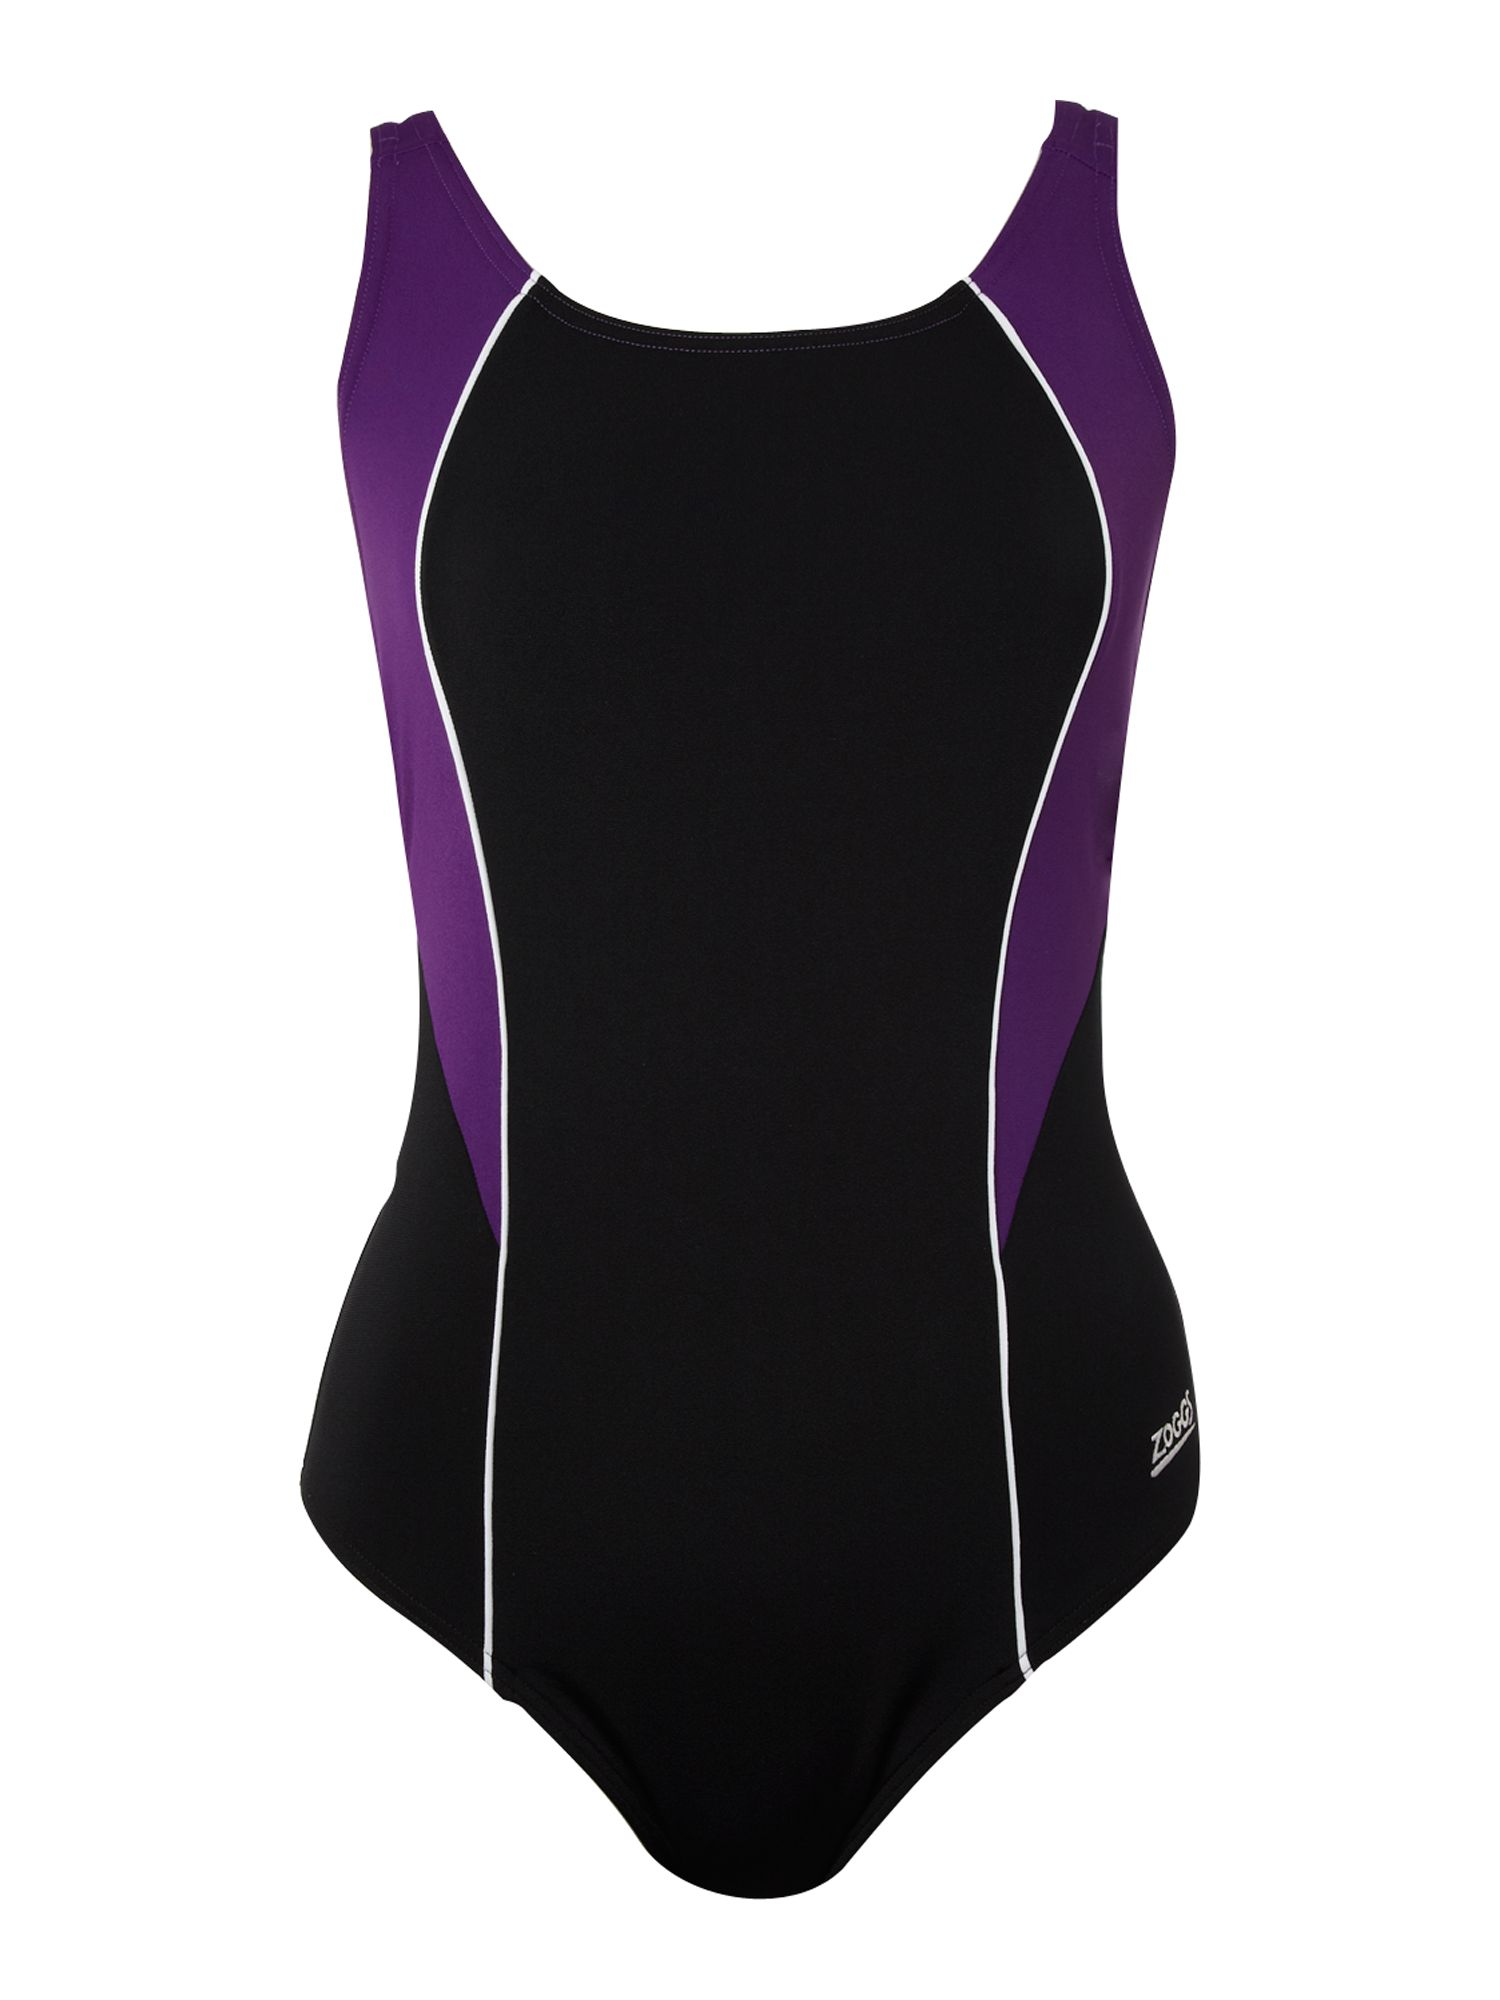 Torquay CR25 speedback swimsuit